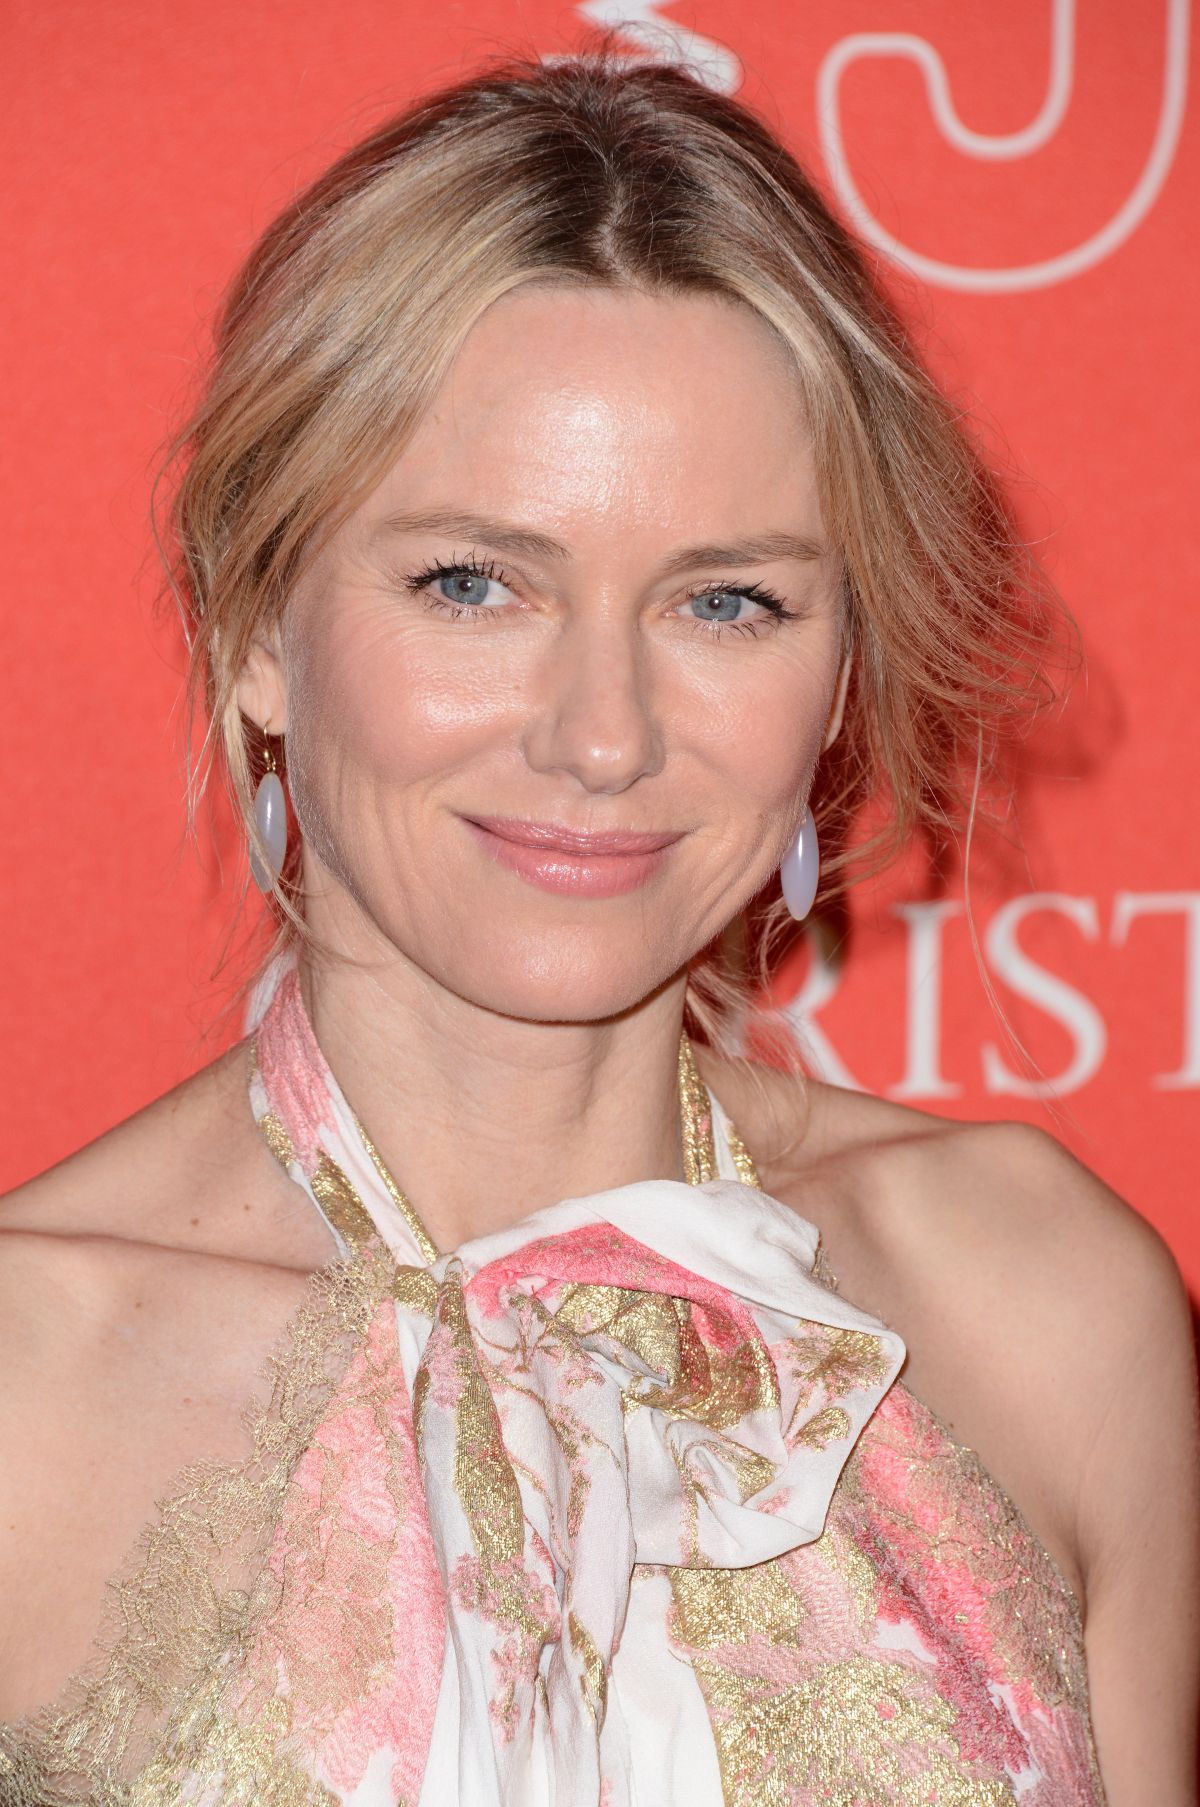 NAOMI WATTS at Lacma's 50th Anniversaty Gala in Los Angeles